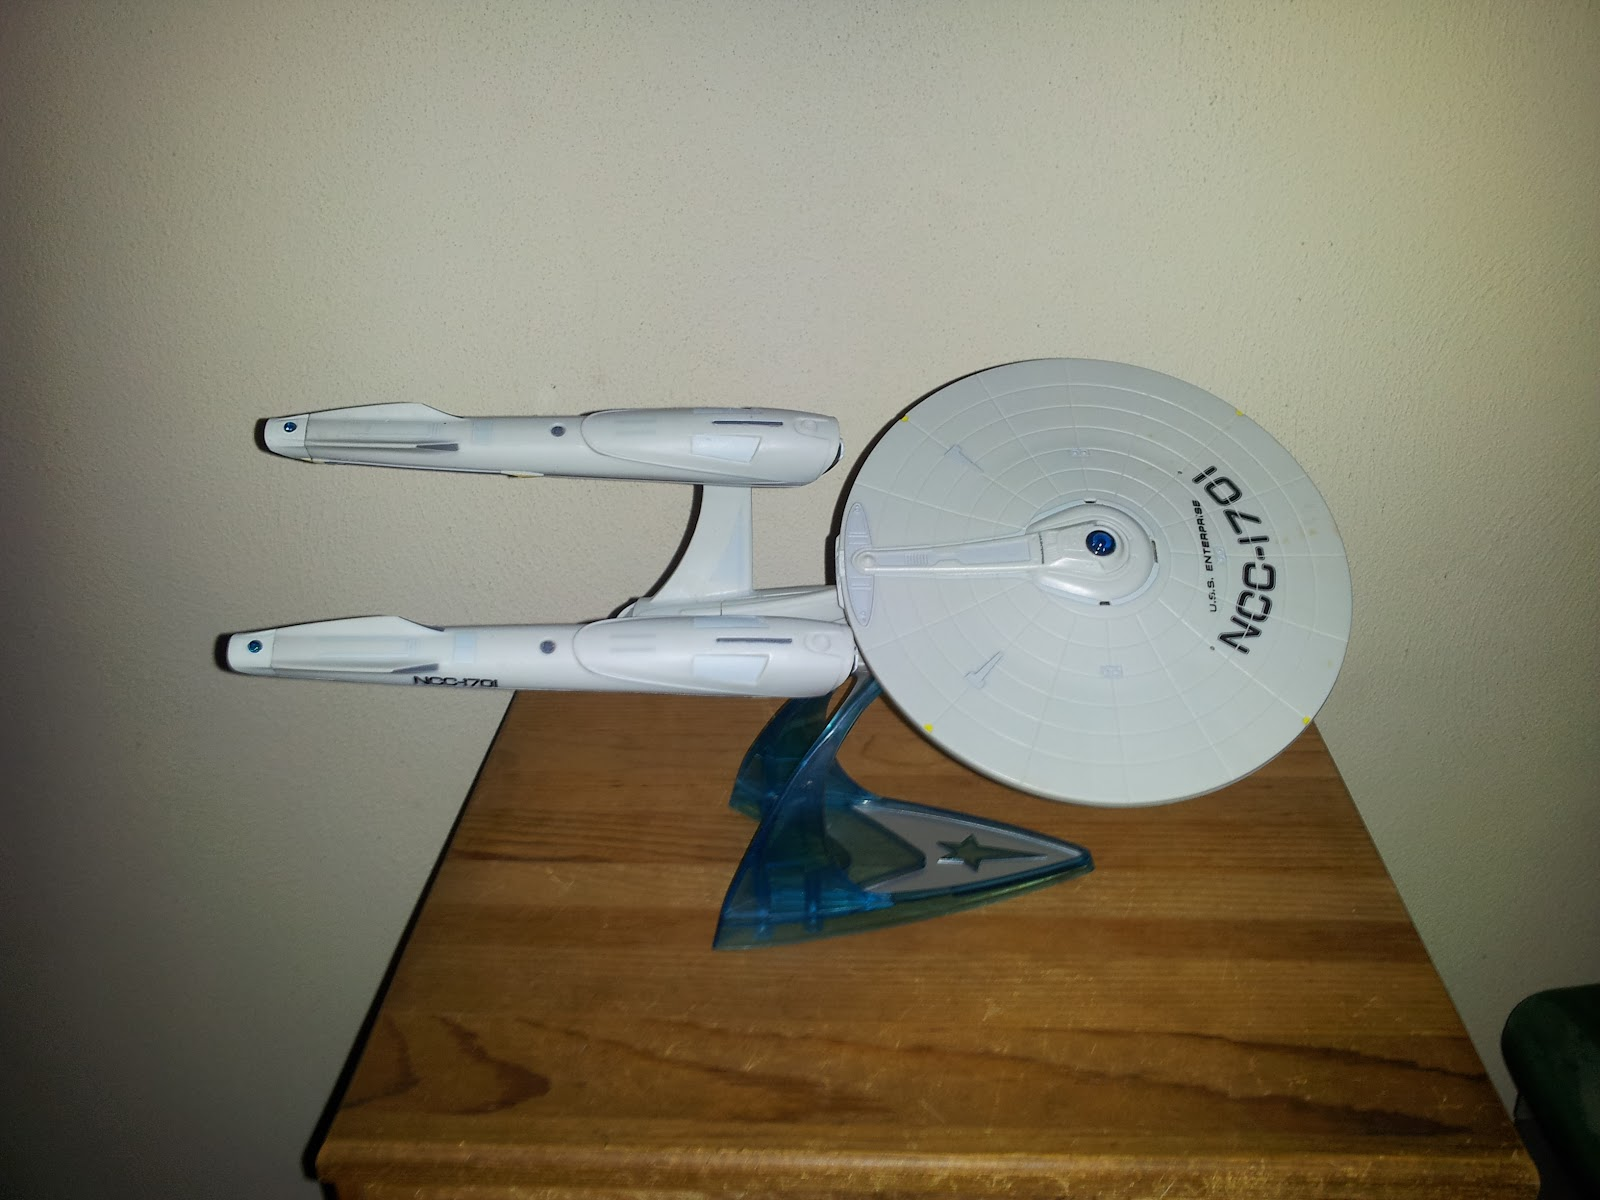 star trek 2009 enterprise toy es collection of things